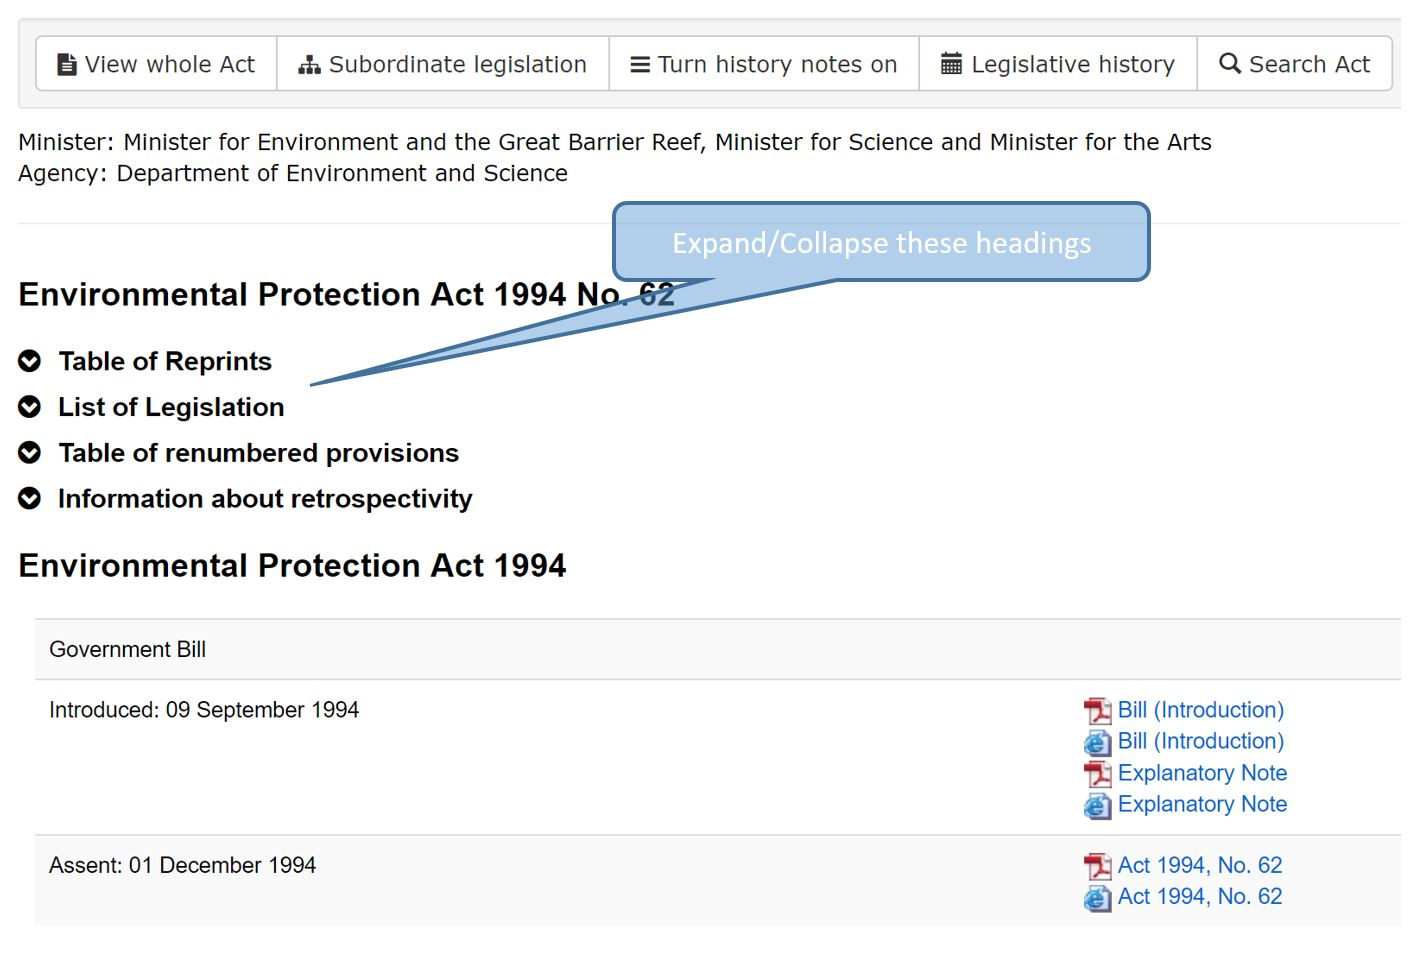 Collapse or expand legislative history headings